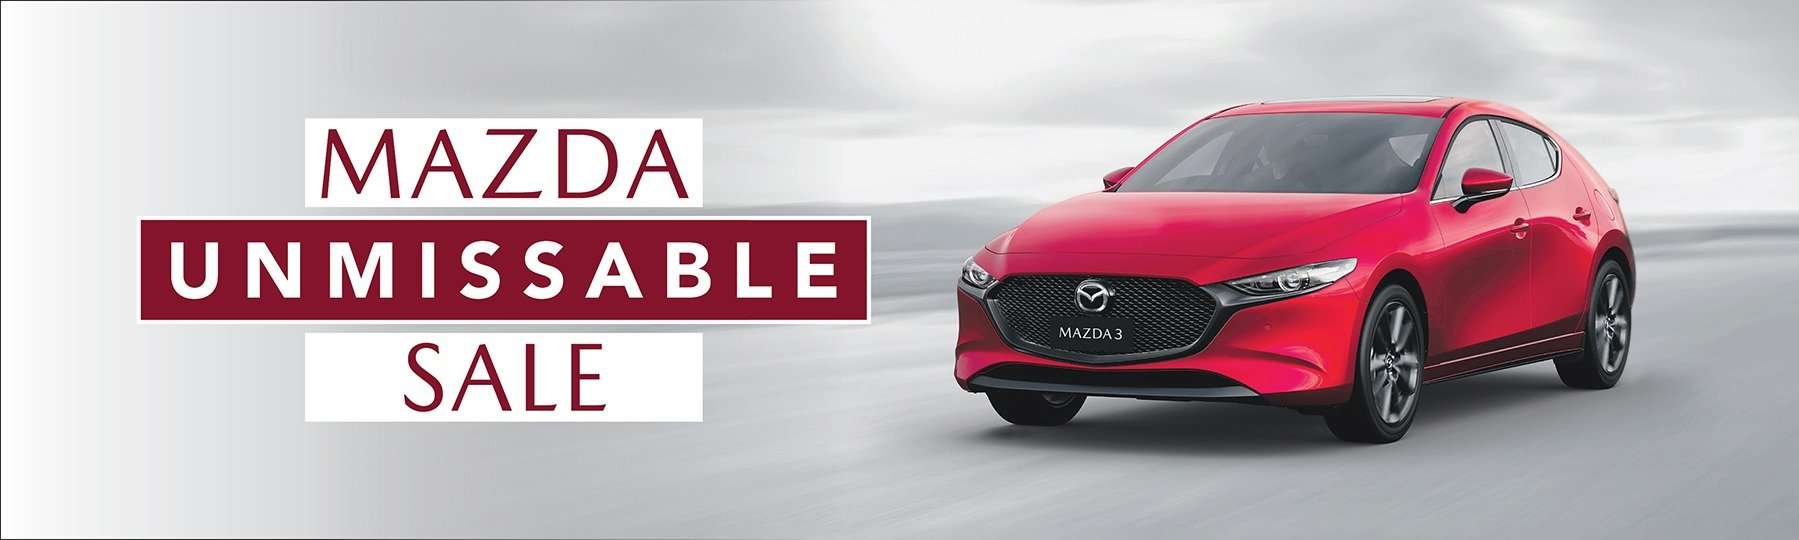 The Mazda Unmissable Sale is On NOW!